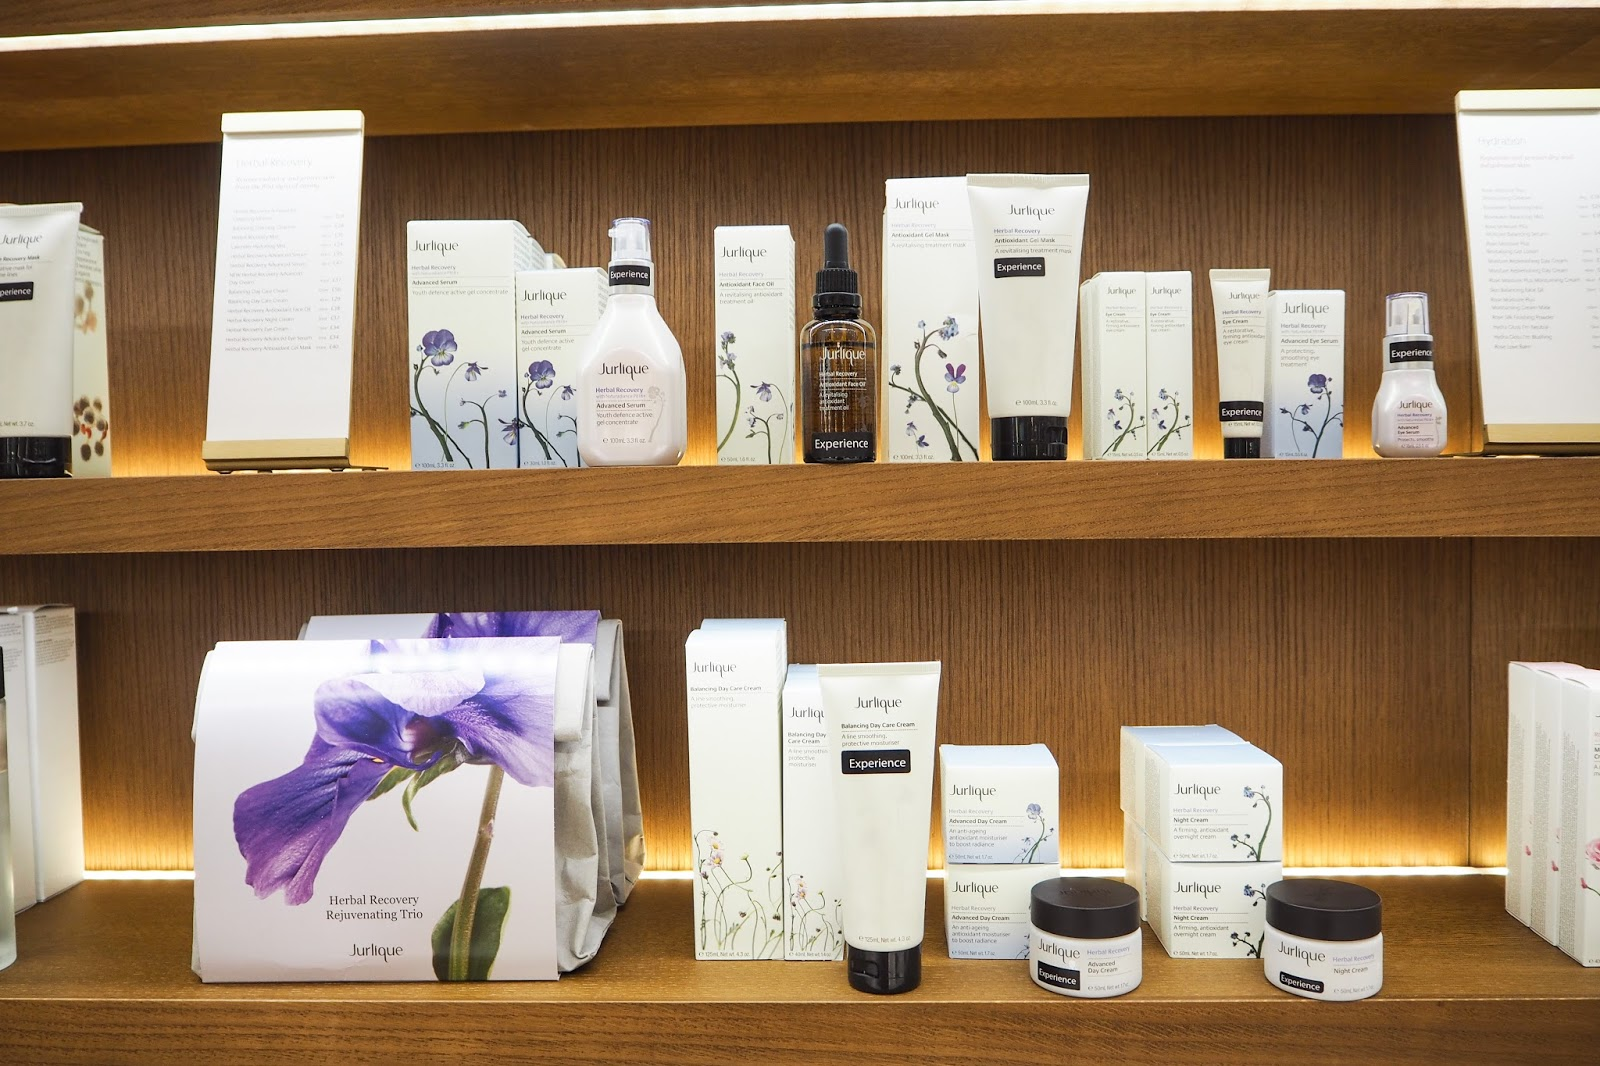 Jurlique's natural skincare products on the shelves.